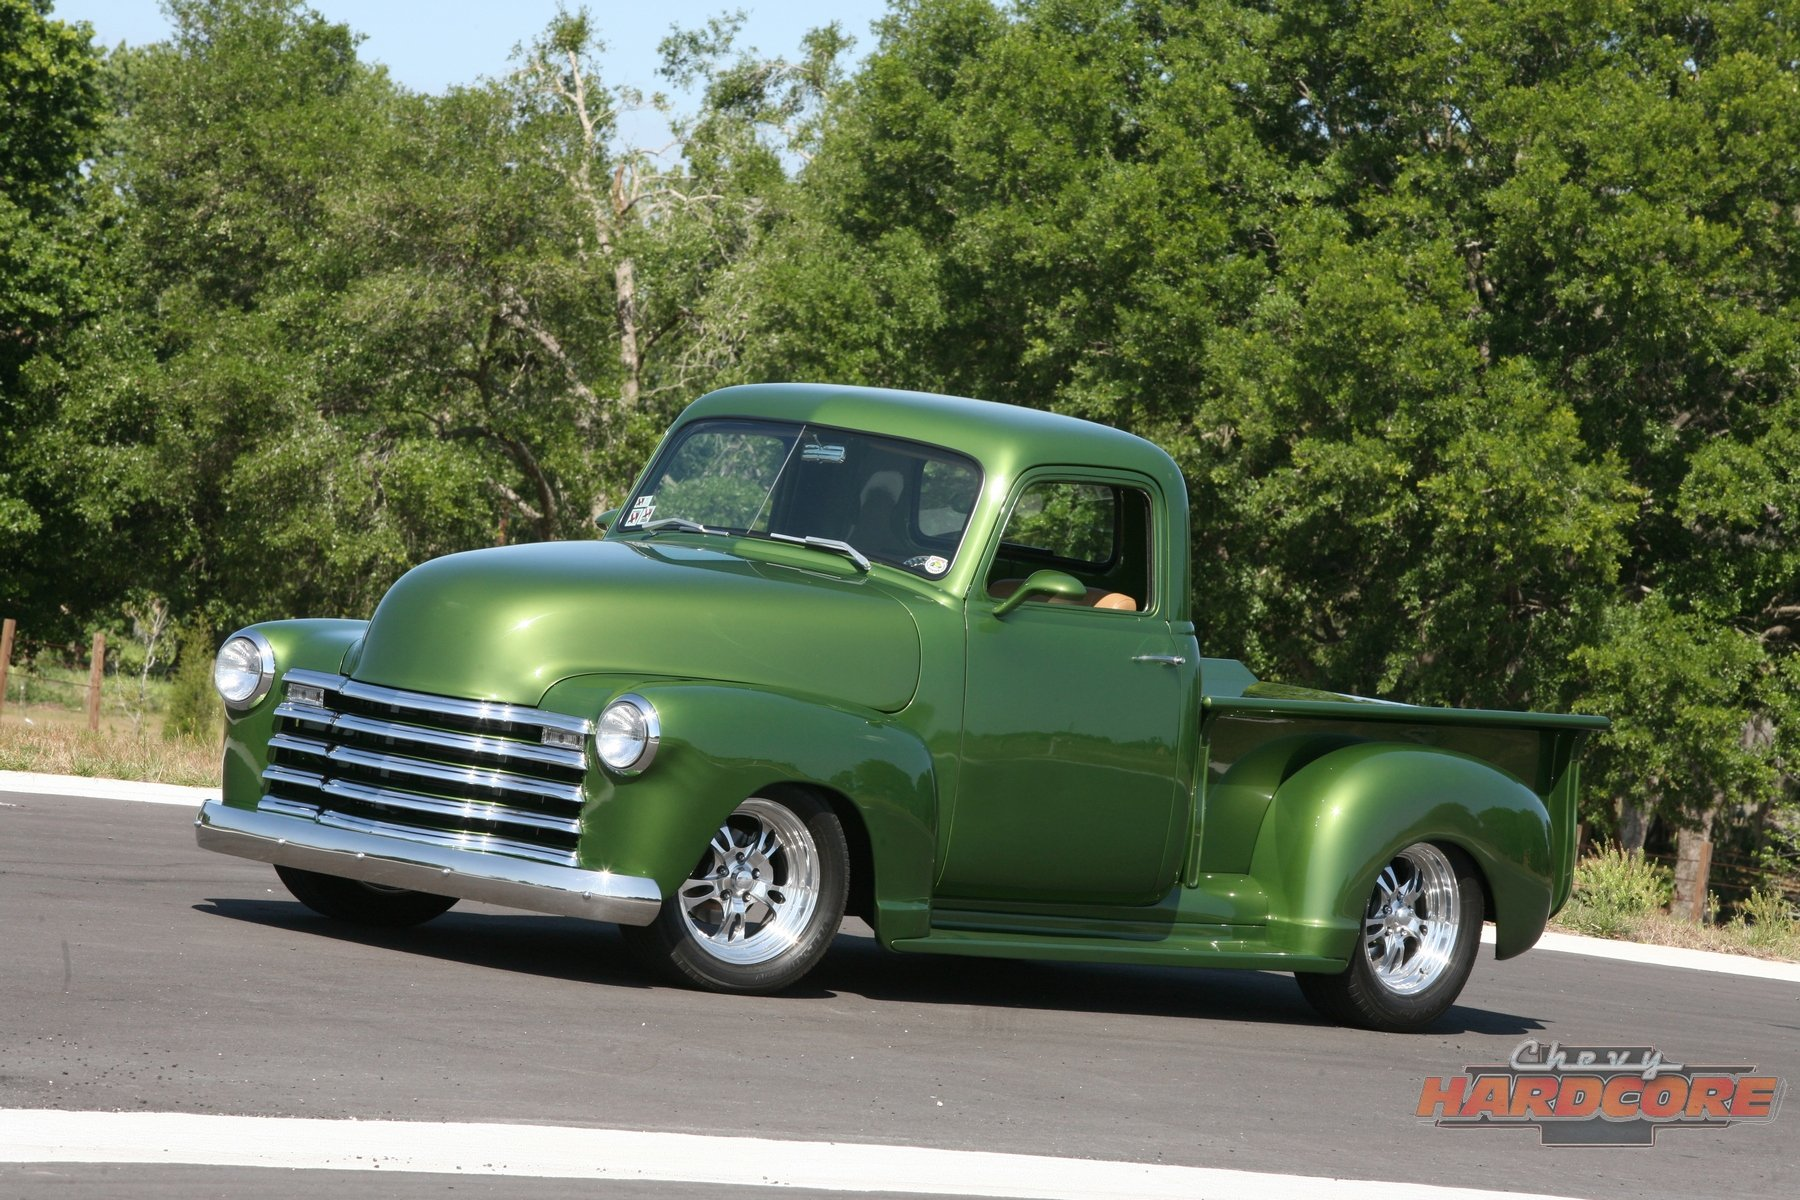 This 49 Chevy Pickup Goes From Old School To Over The Top Cool